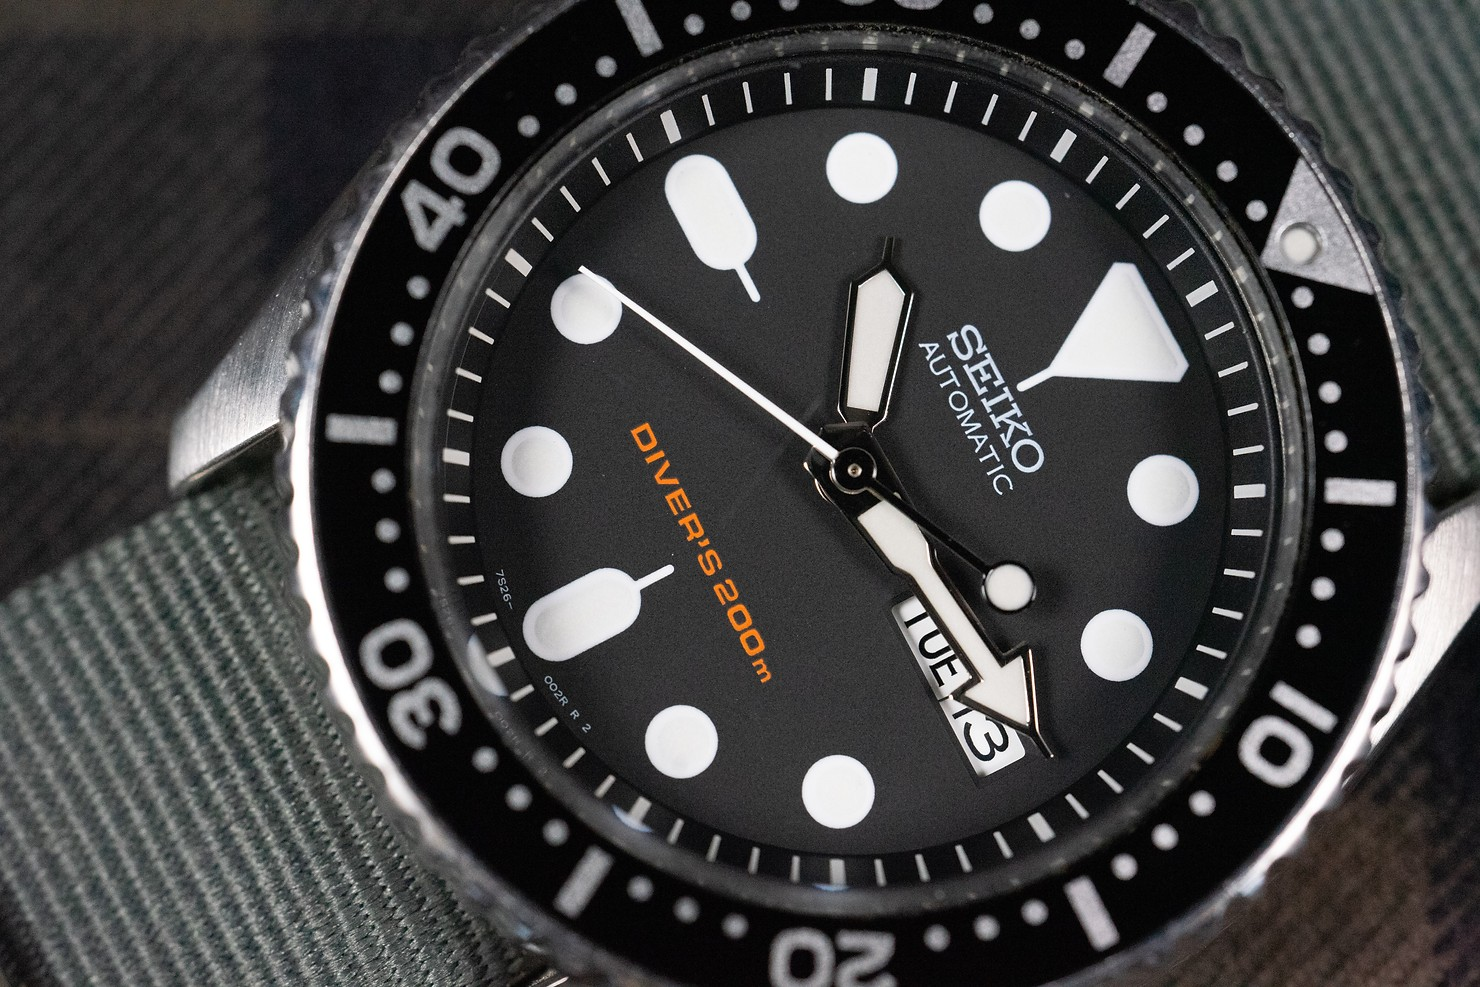 Second Look Review – The Seiko SKX007 200m Dive Watch